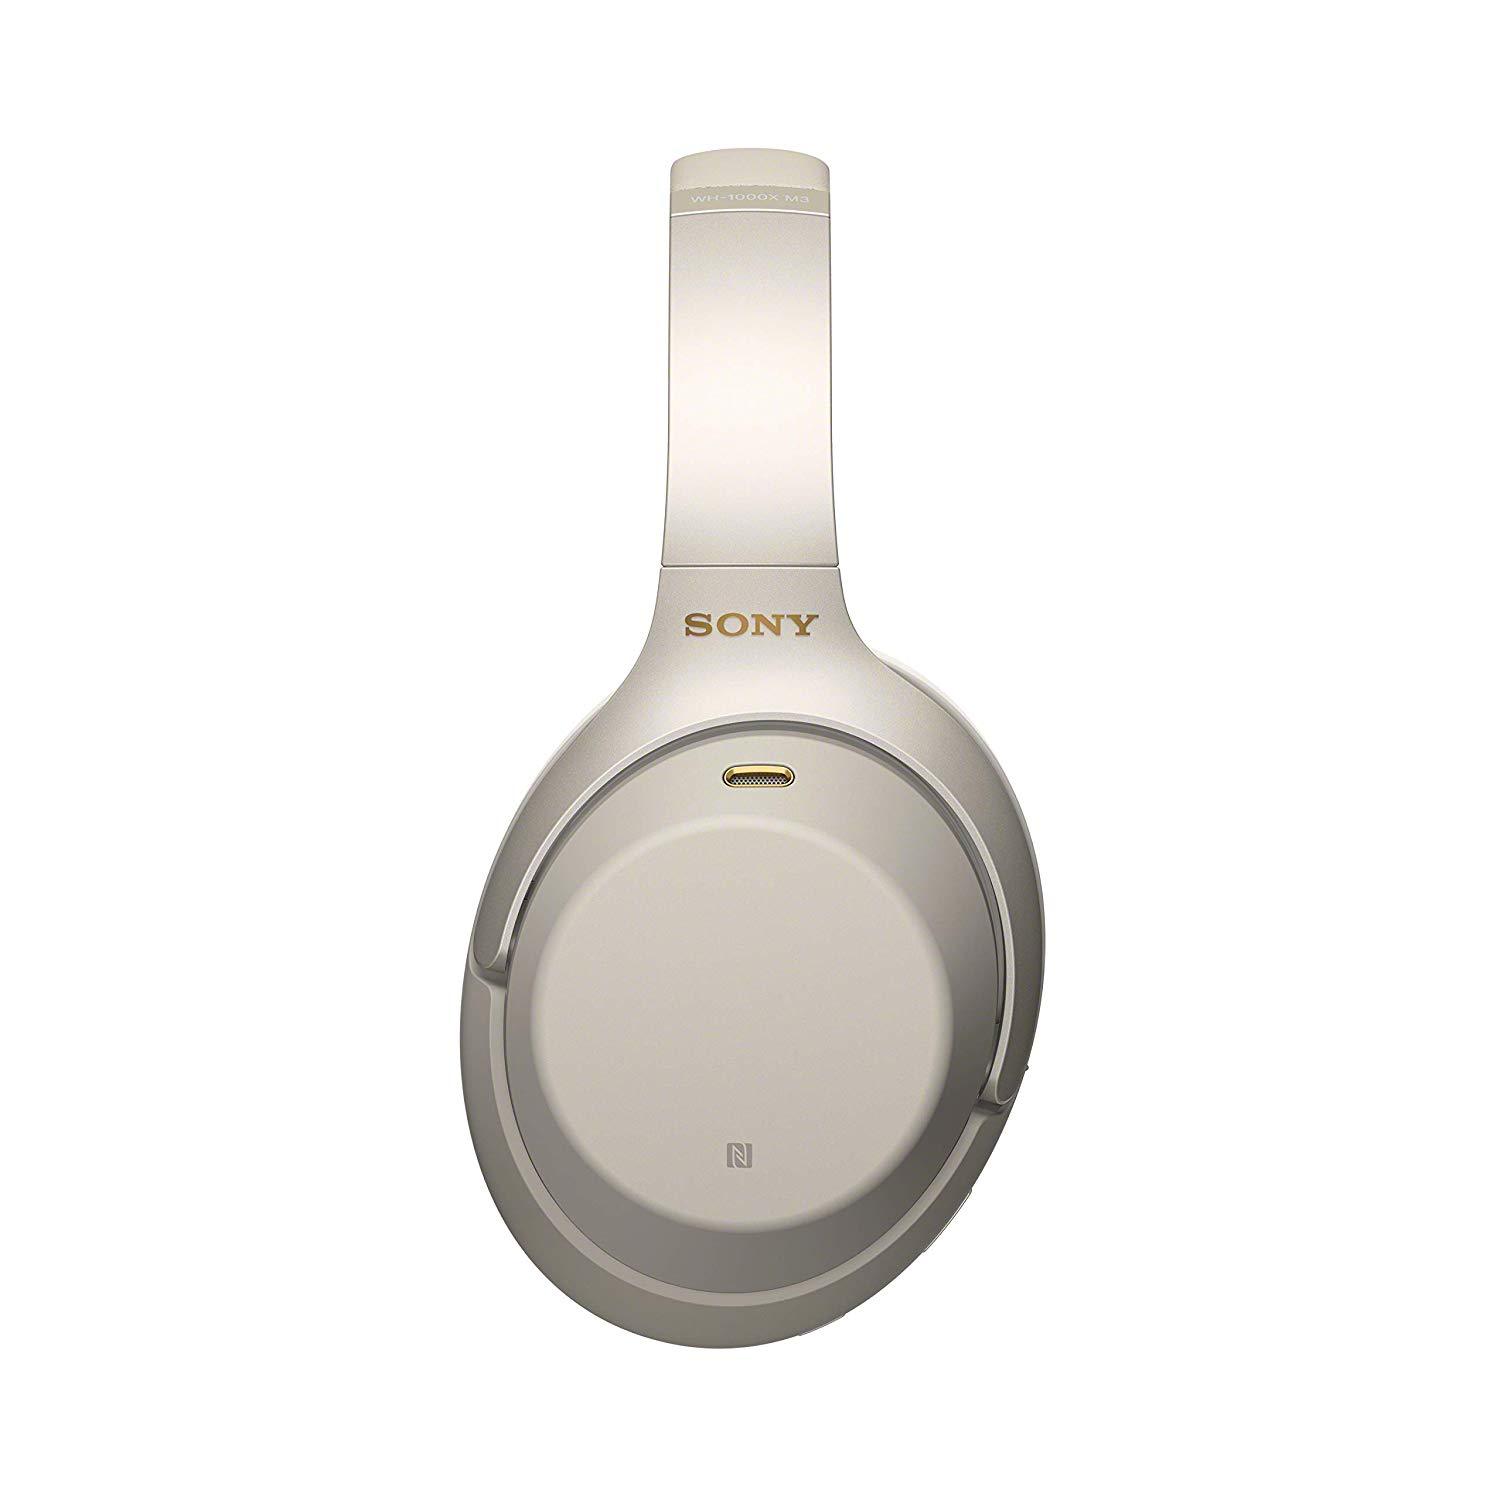 Sony-WH-1000XM3-Wireless-Noise-Canceling-Over-Ear-Headphones-w-Google-Assistant thumbnail 17